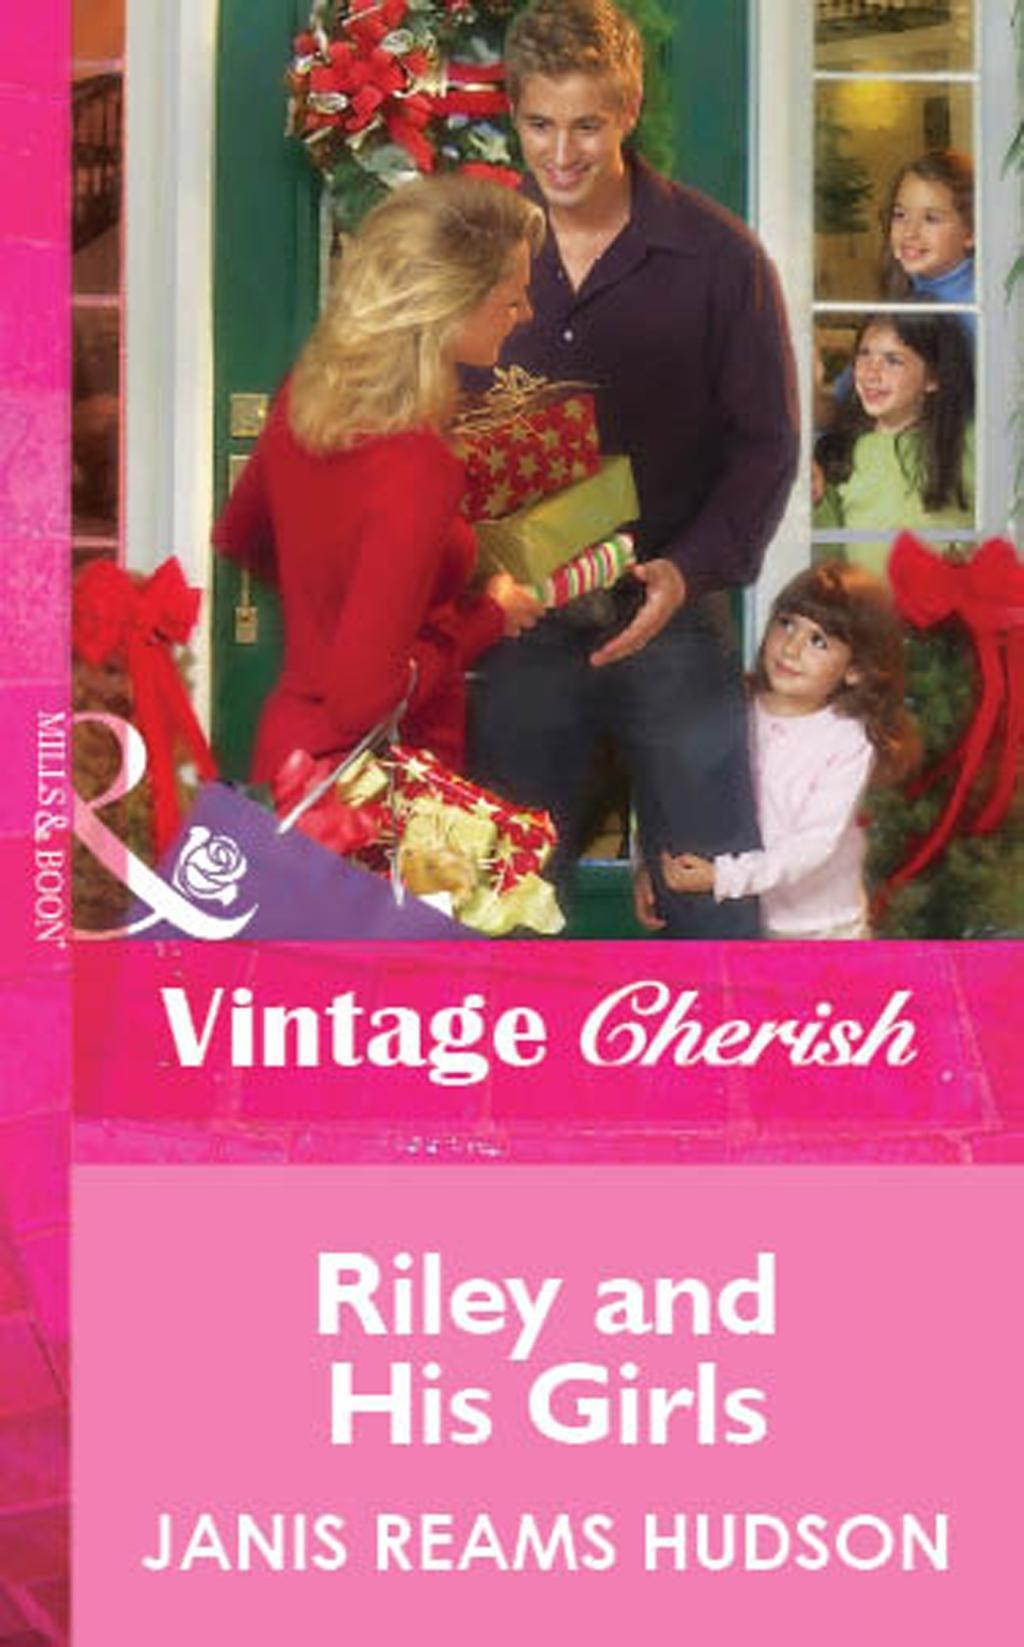 Riley and His Girls (Mills & Boon Vintage Cherish)